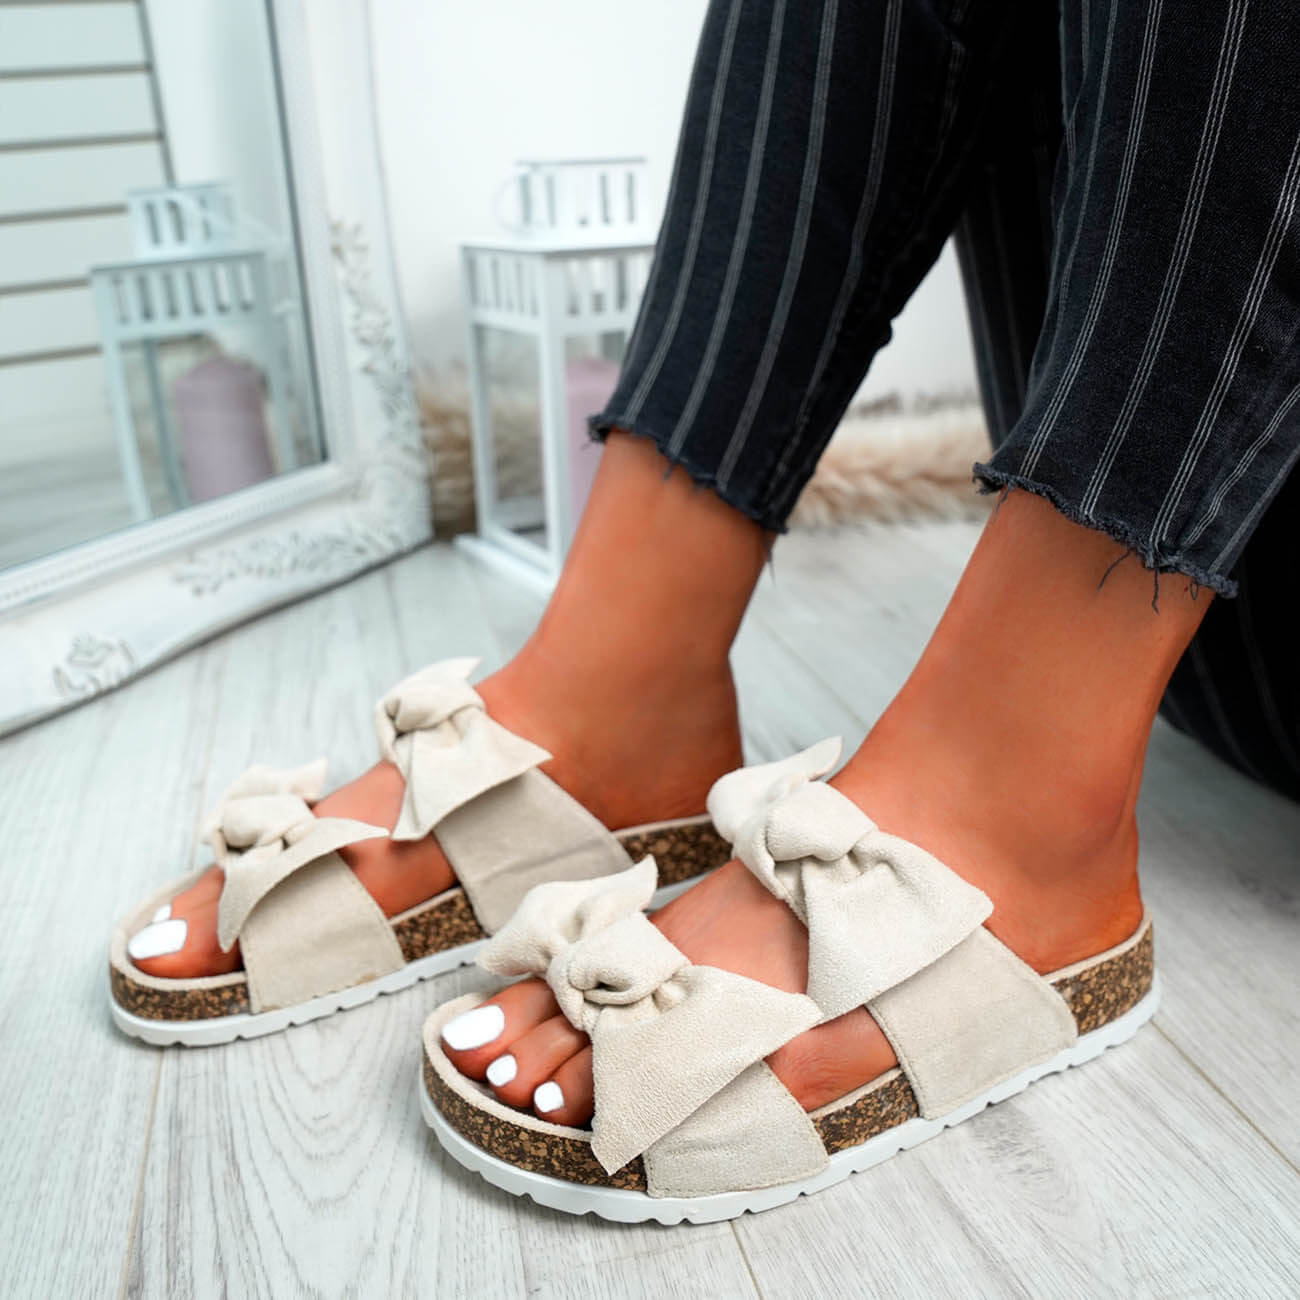 WOMENS-LADIES-PEEP-TOE-SLIP-ON-DOUBLE-BOW-FLAT-SANDALS-PARTY-CLUB-SUMMER-SHOES thumbnail 9